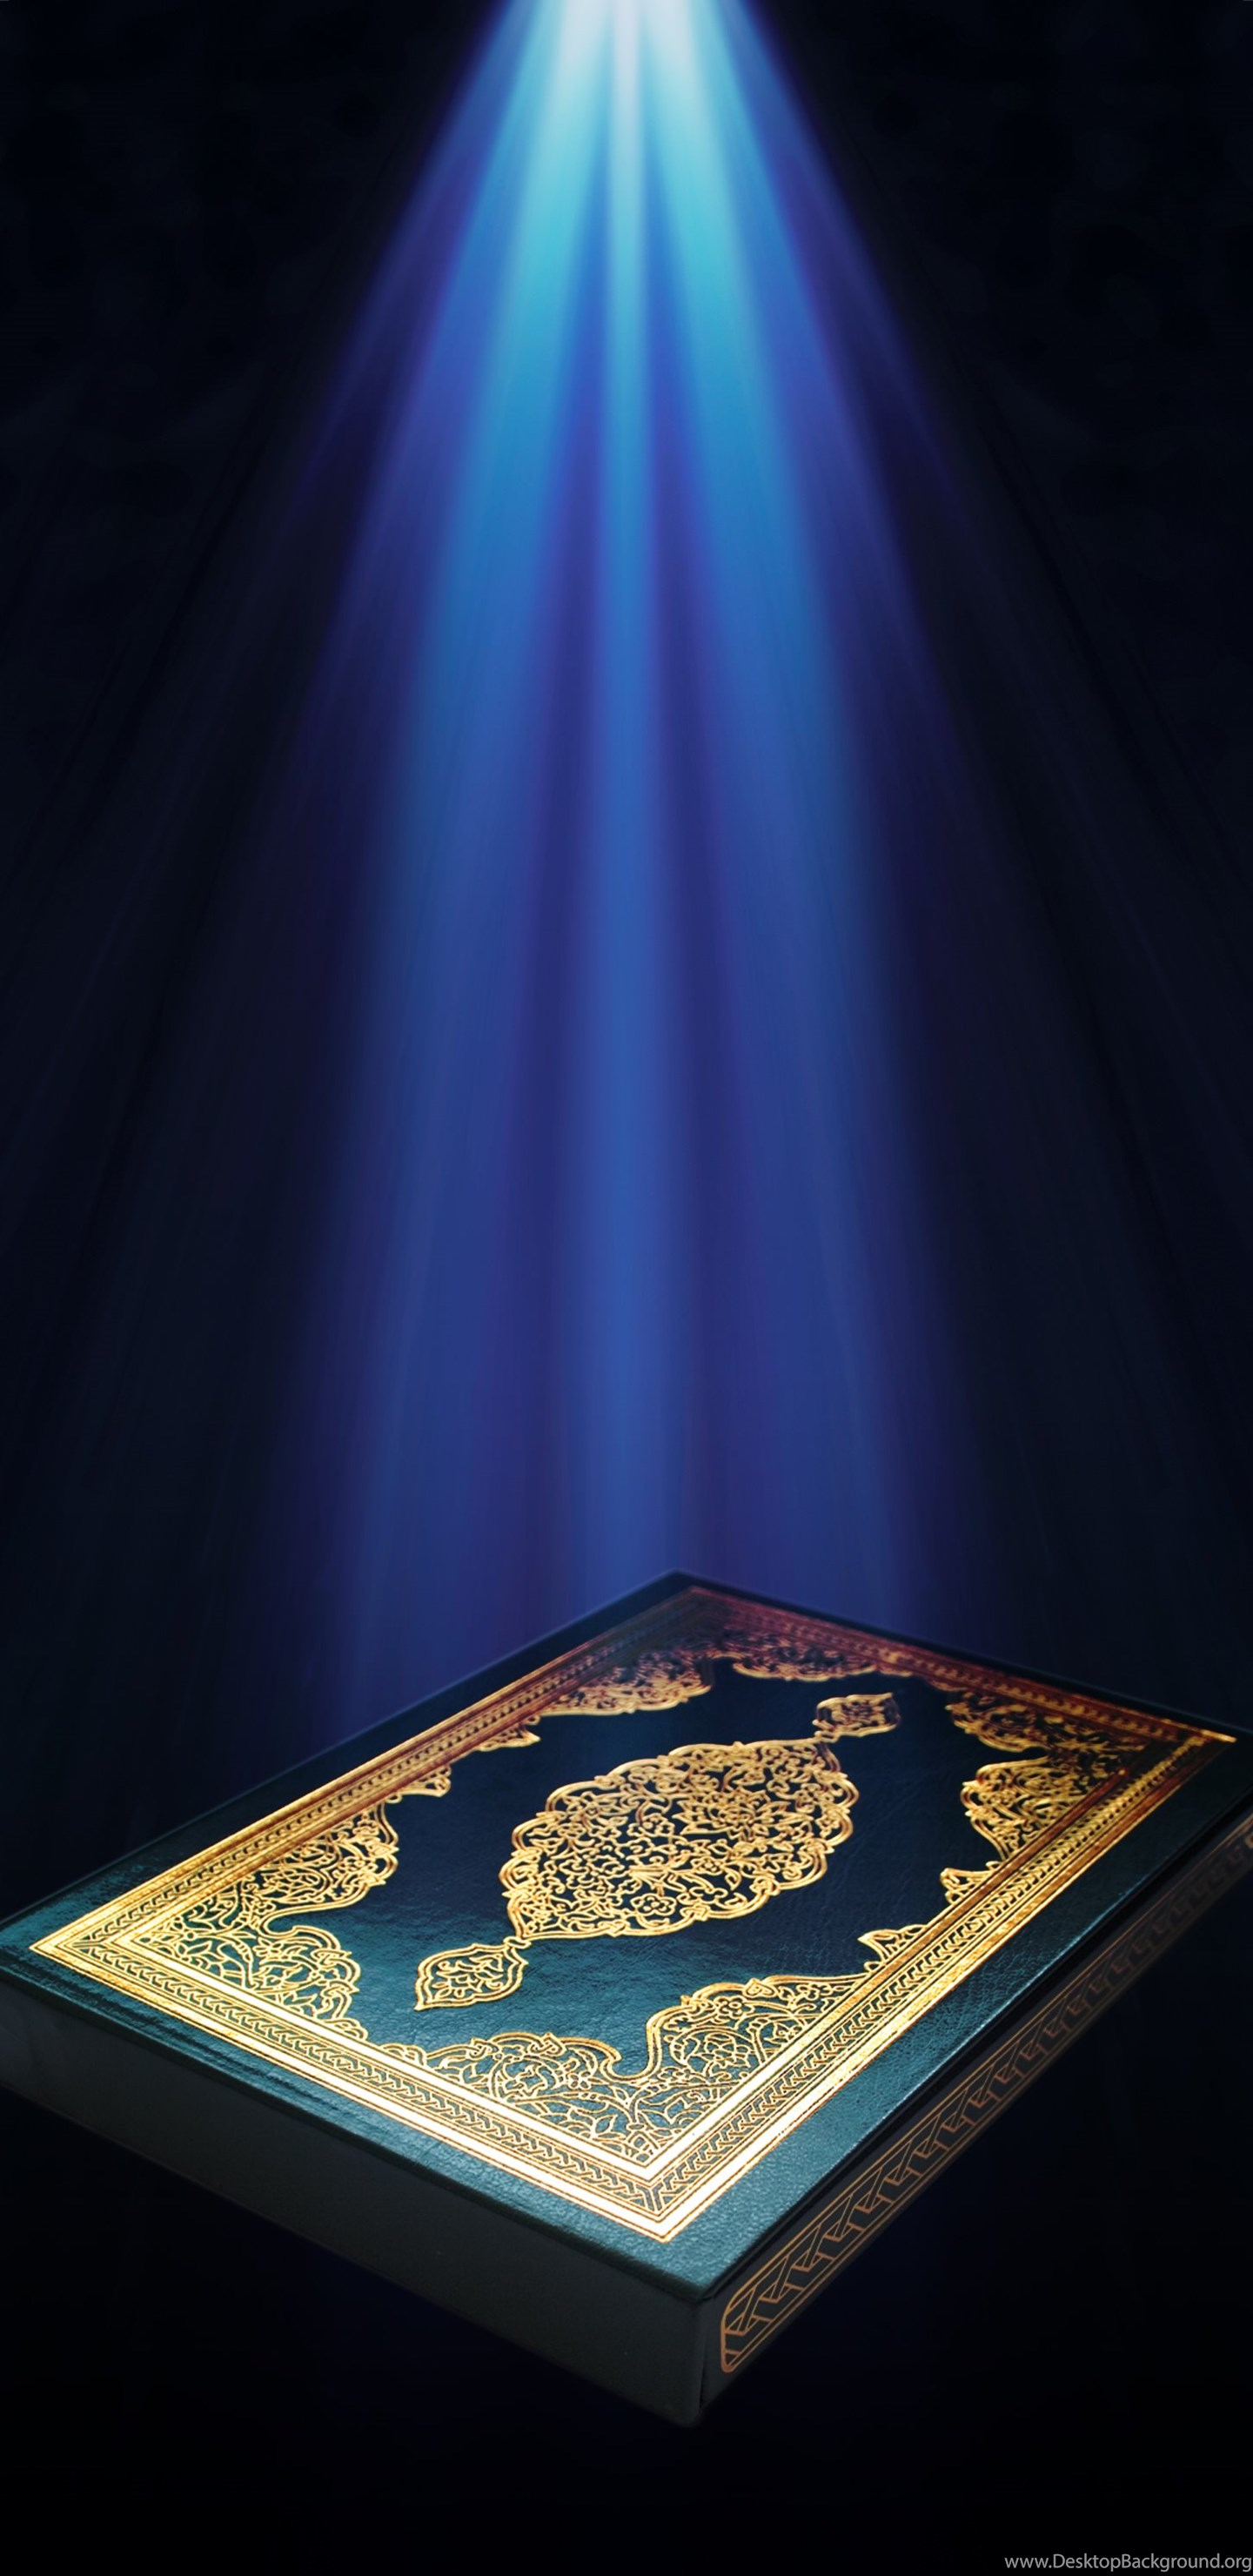 Quran Wallpapers Hd In Urdu Gallery Iphhone Download Tumblr